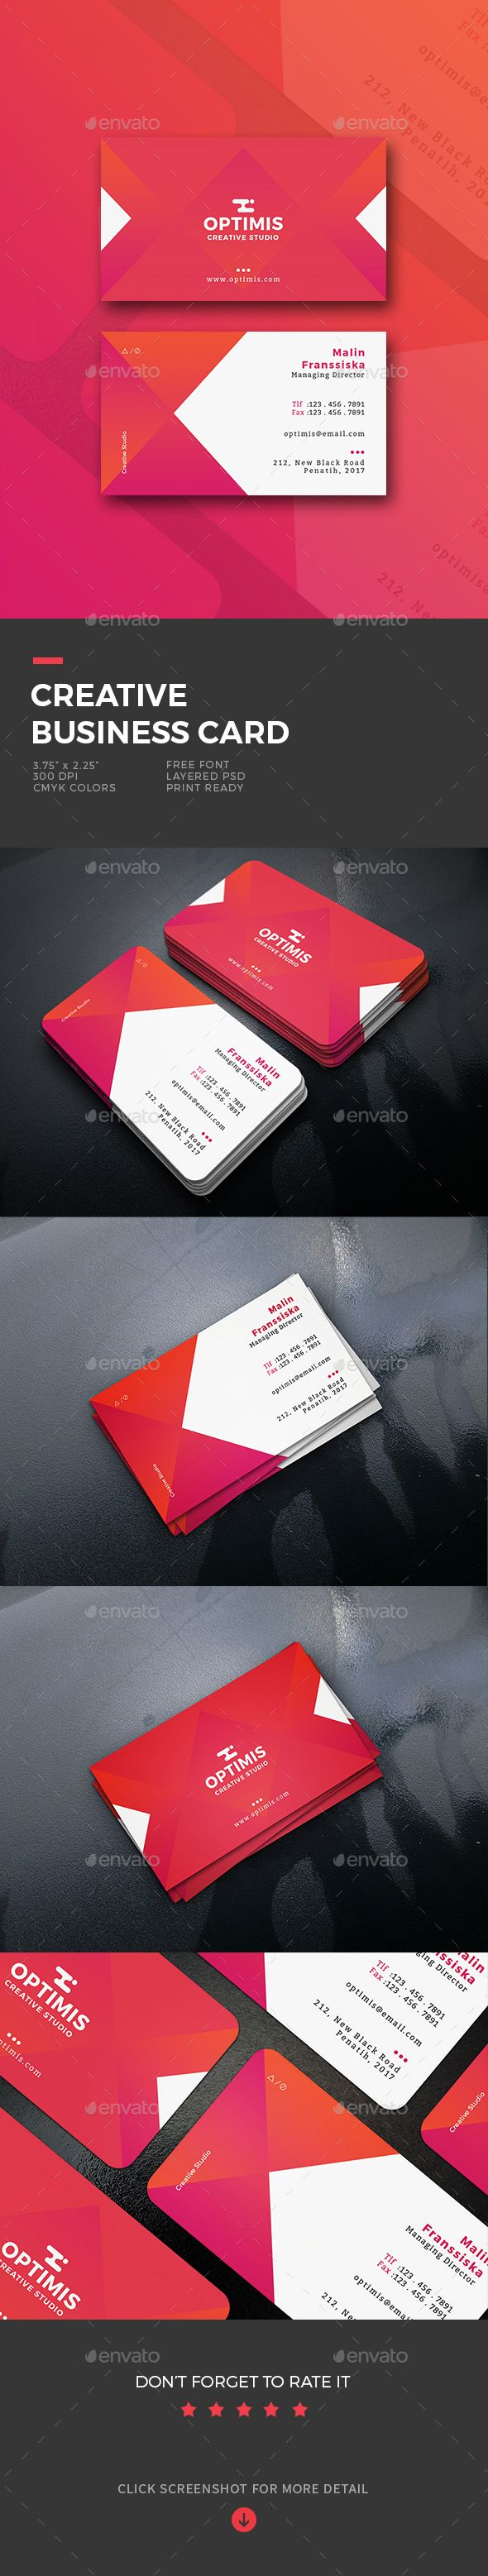 Creative #Business #Card - Business Cards Print Templates Download here: https://graphicriver.net/item/creative-business-card/19930291?ref=alena994